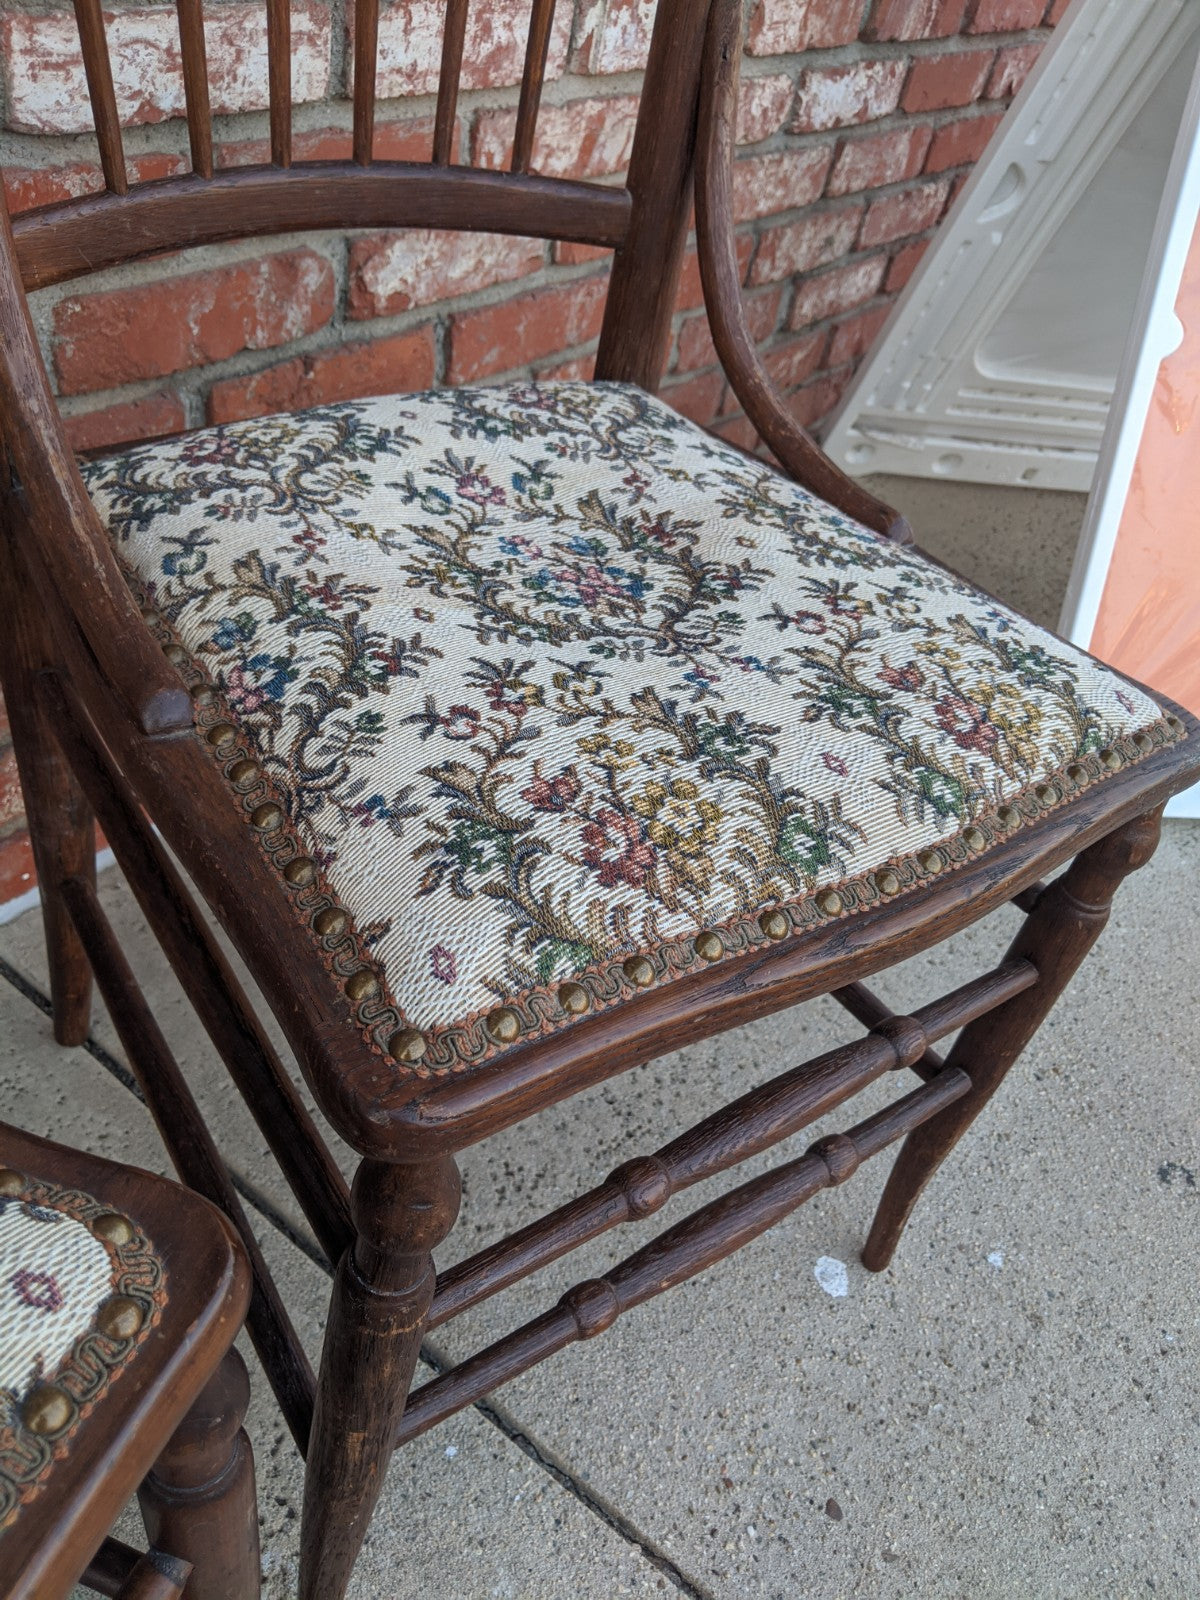 Antique wooden side chair w tapestry upholstered seat